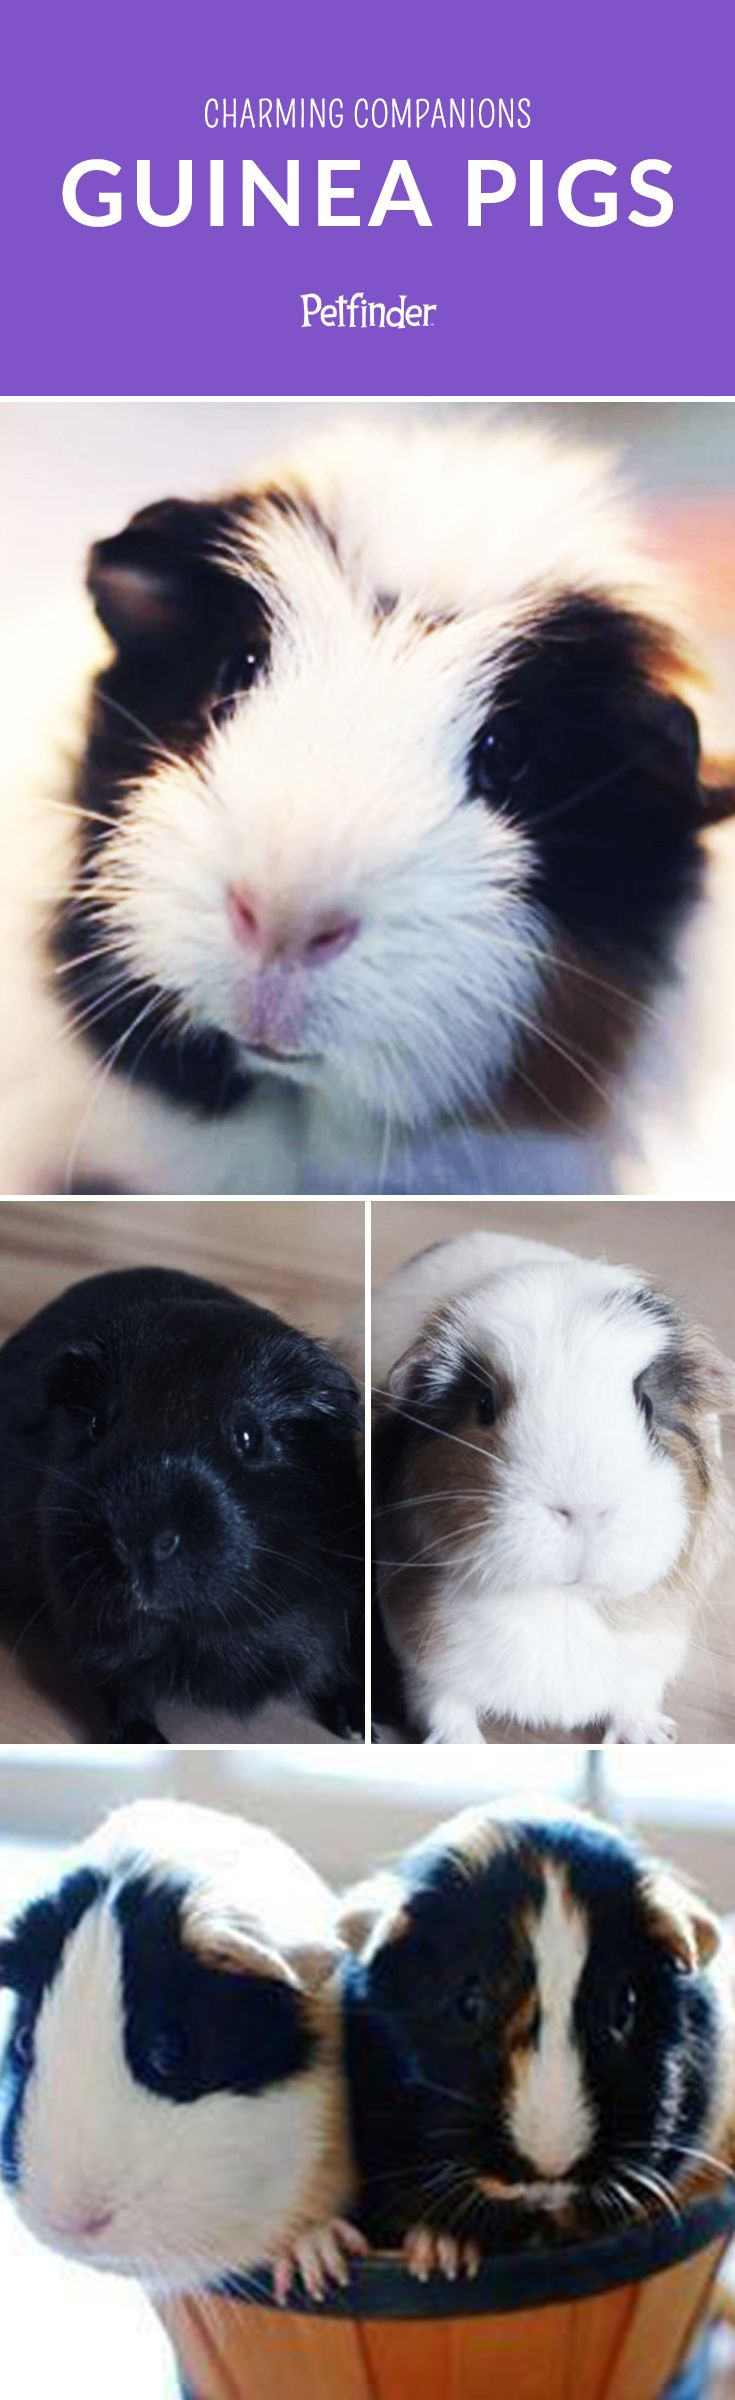 Did you know that many animal shelters have Guinea Pigs available for adoption? These low-maintenance pets are commonly surrendered by owners, in part to the reality that pet store guinea pig purchases are often unplanned and unresearched.